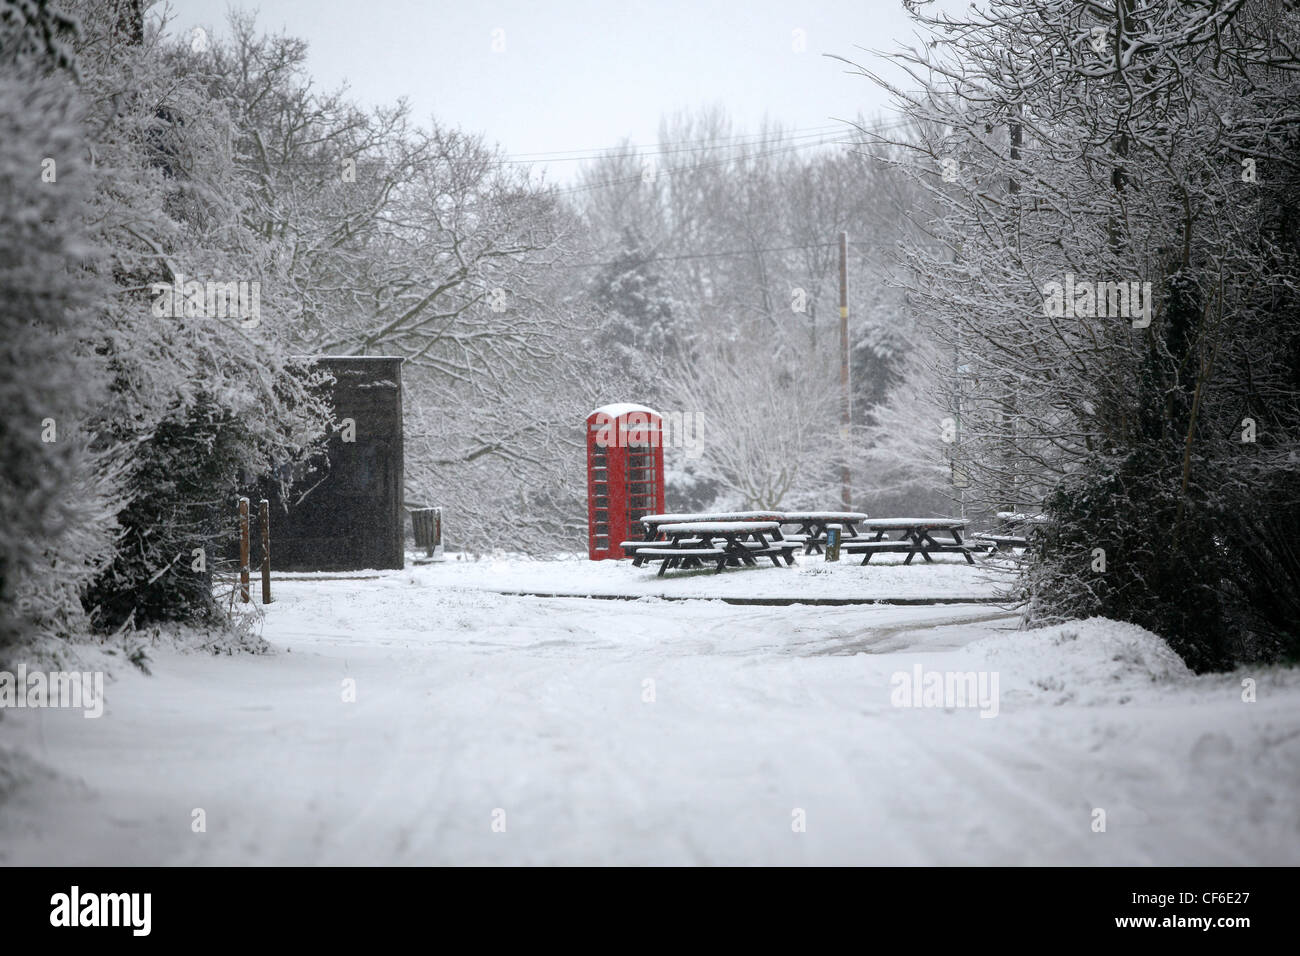 A village phone box in snow. The first standard public telephone kiosk introduced by the United Kingdom Post Office - Stock Image